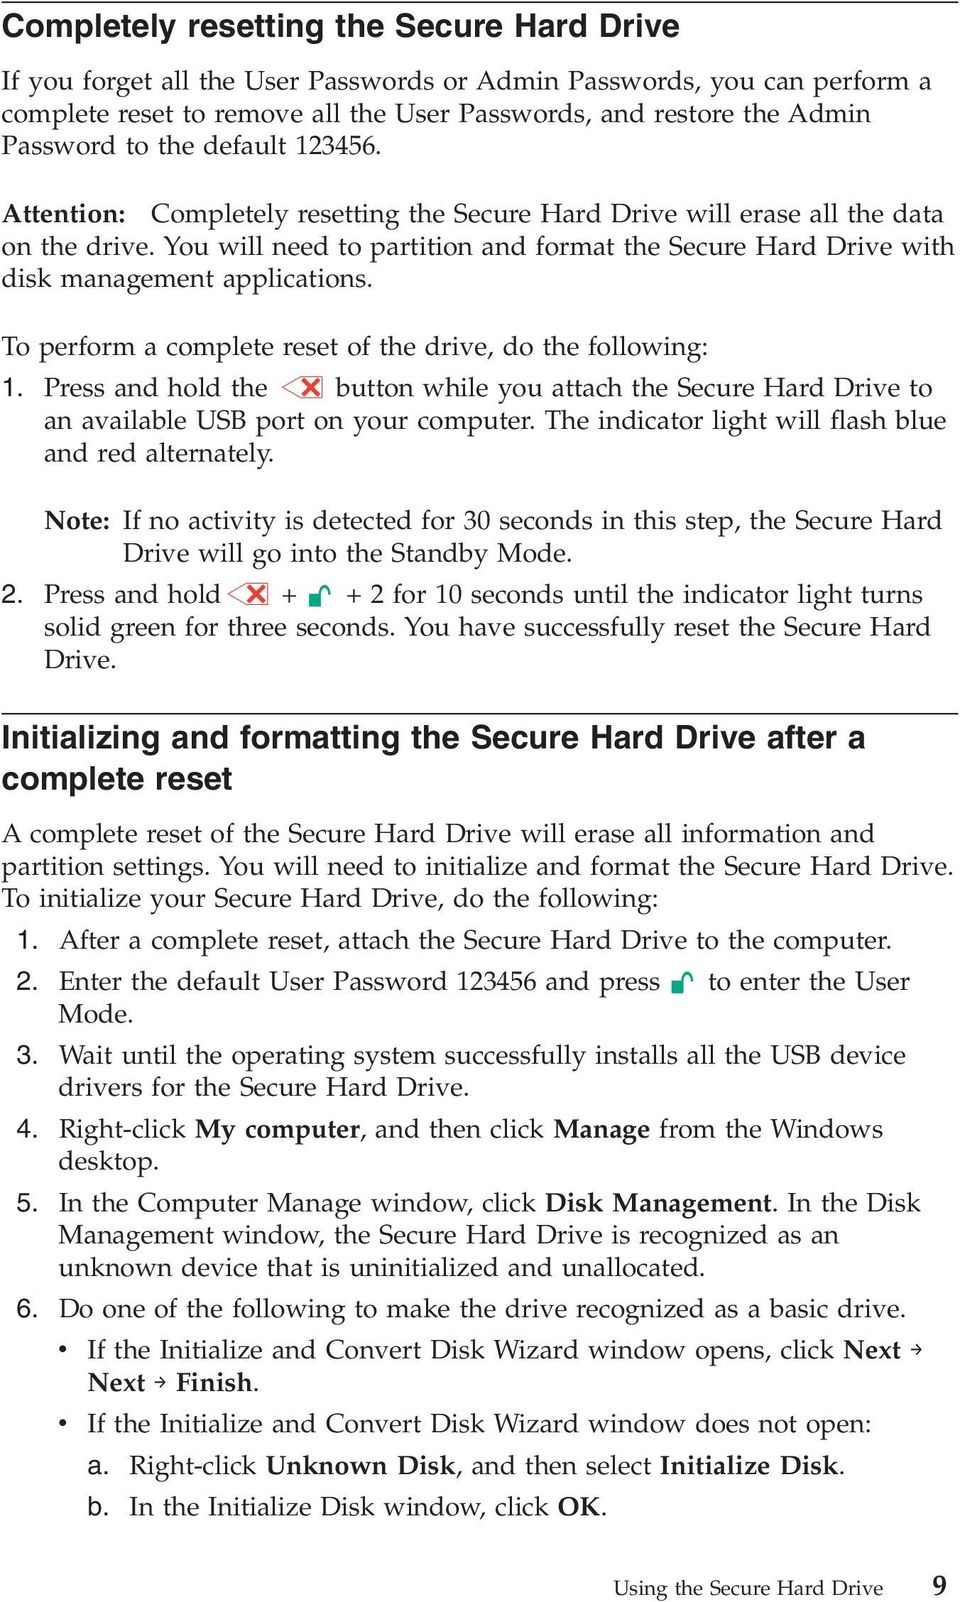 You will need to partition and format the Secure Hard Drive with disk management applications. To perform a complete reset of the drive, do the following: 1.